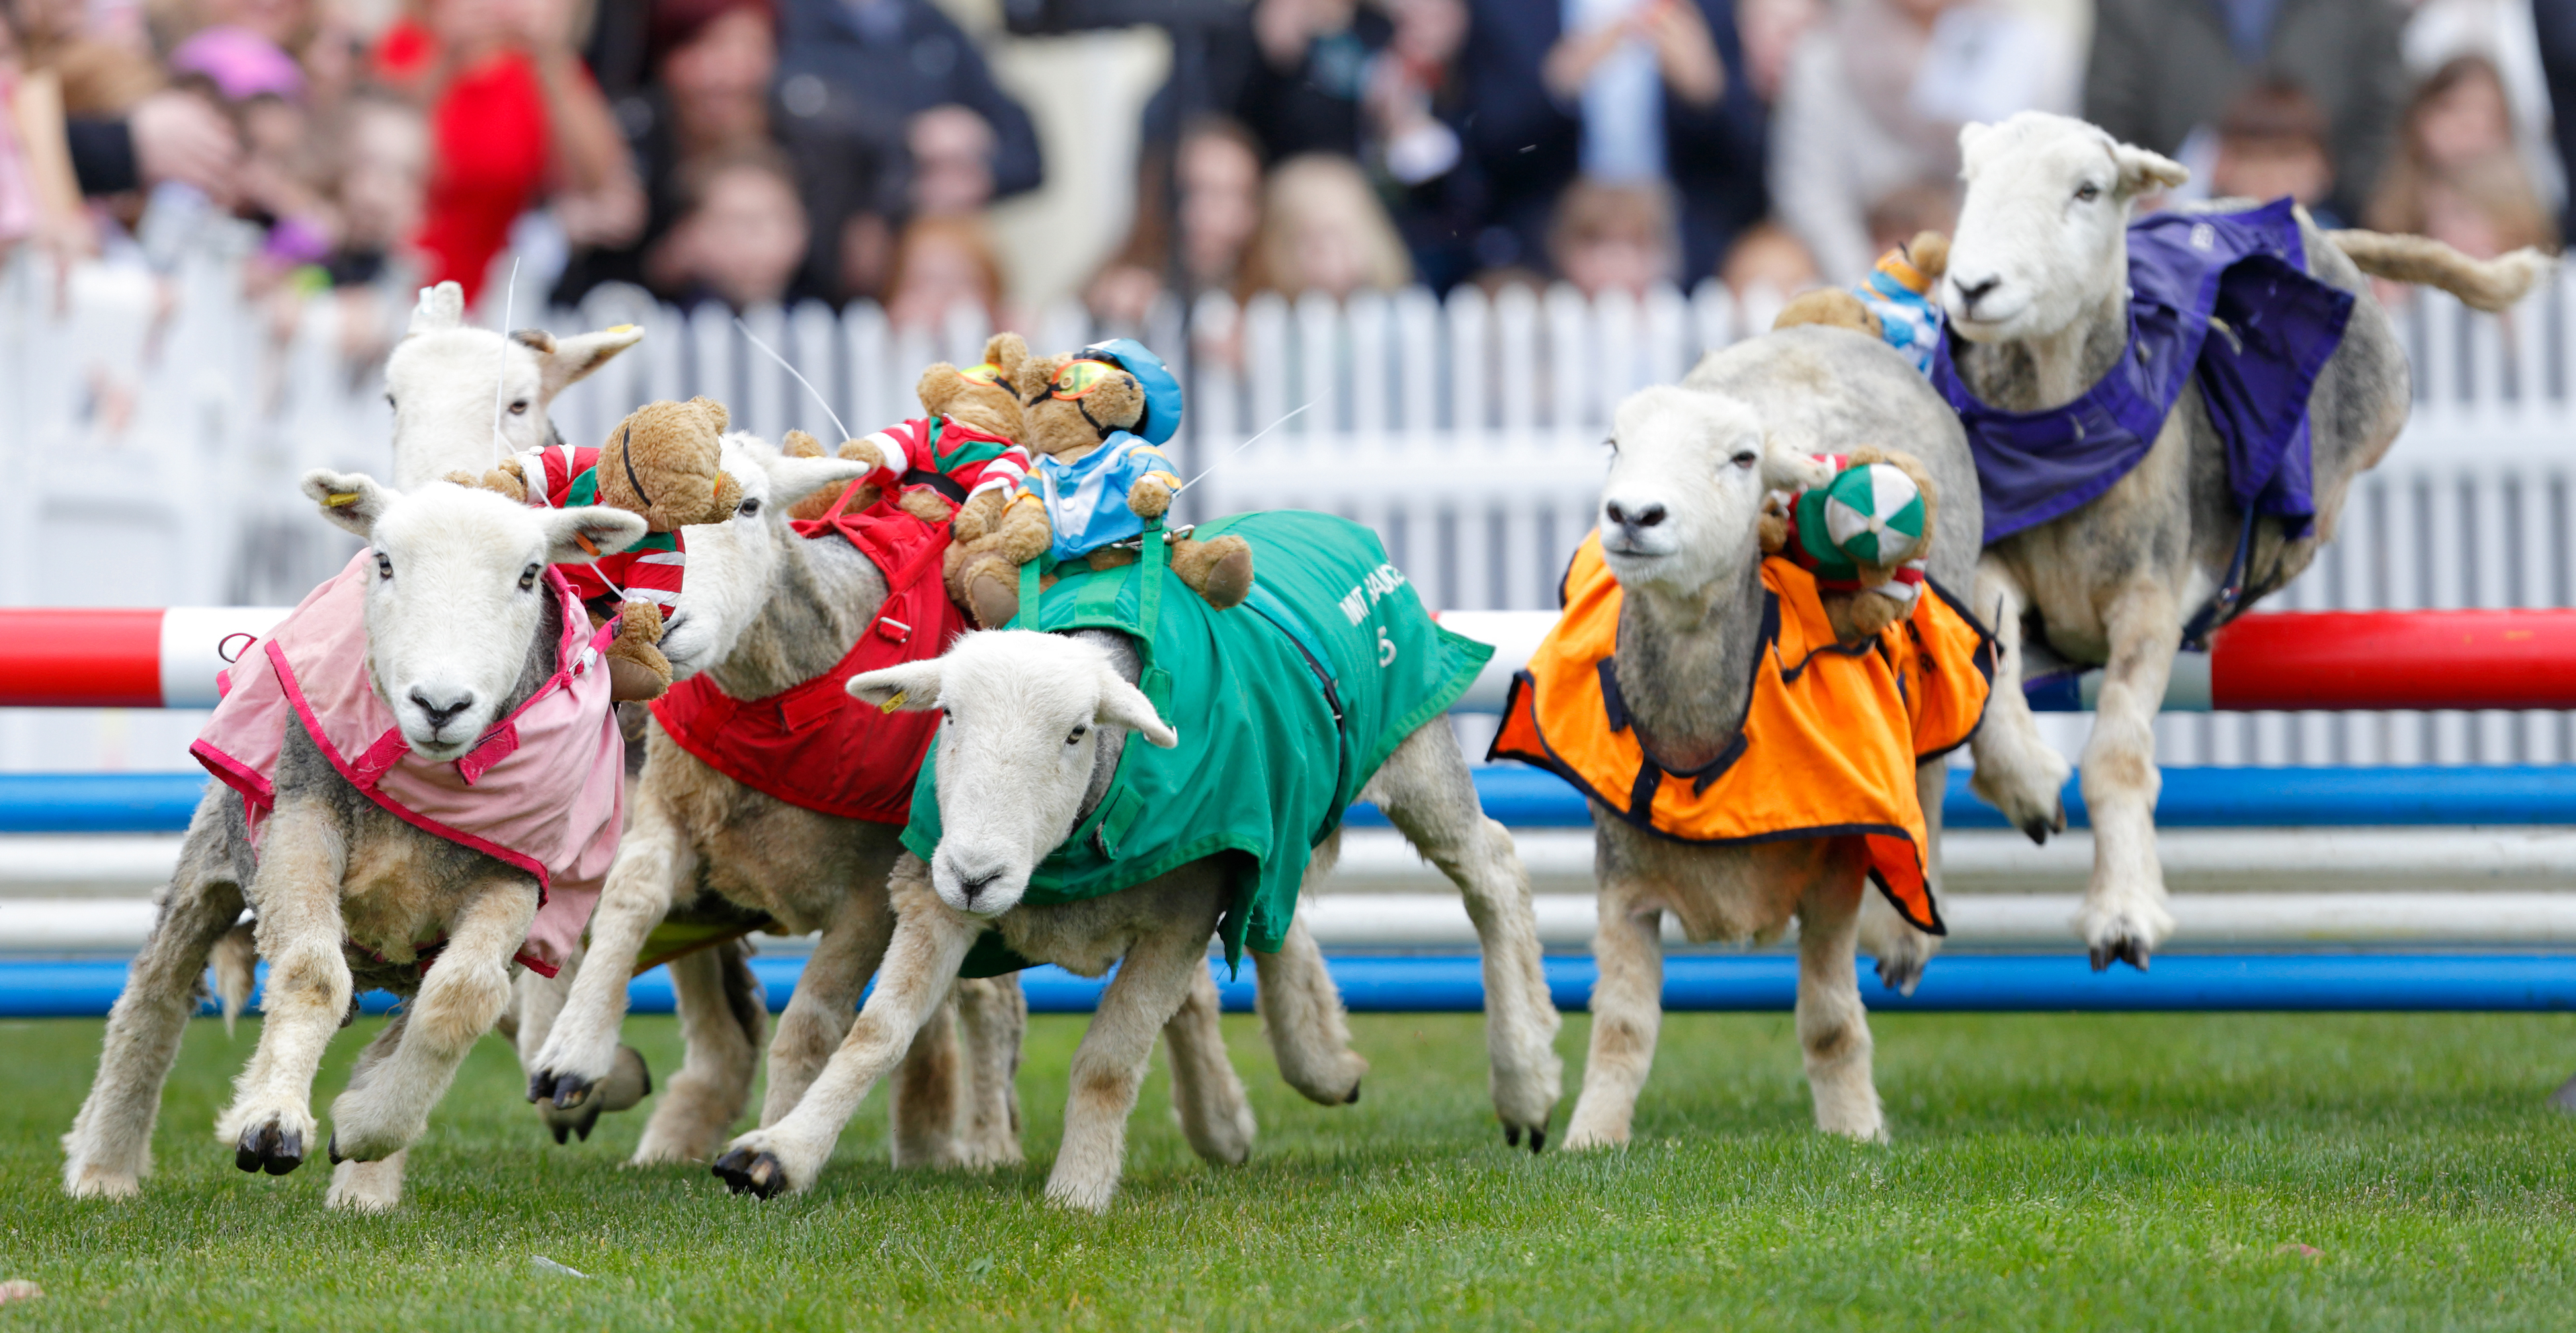 Sheep take part in the  Lamb National  race during the Prince's Countryside Fund Raceday at Ascot Racecourse in Ascot, England, on April 3, 2016.